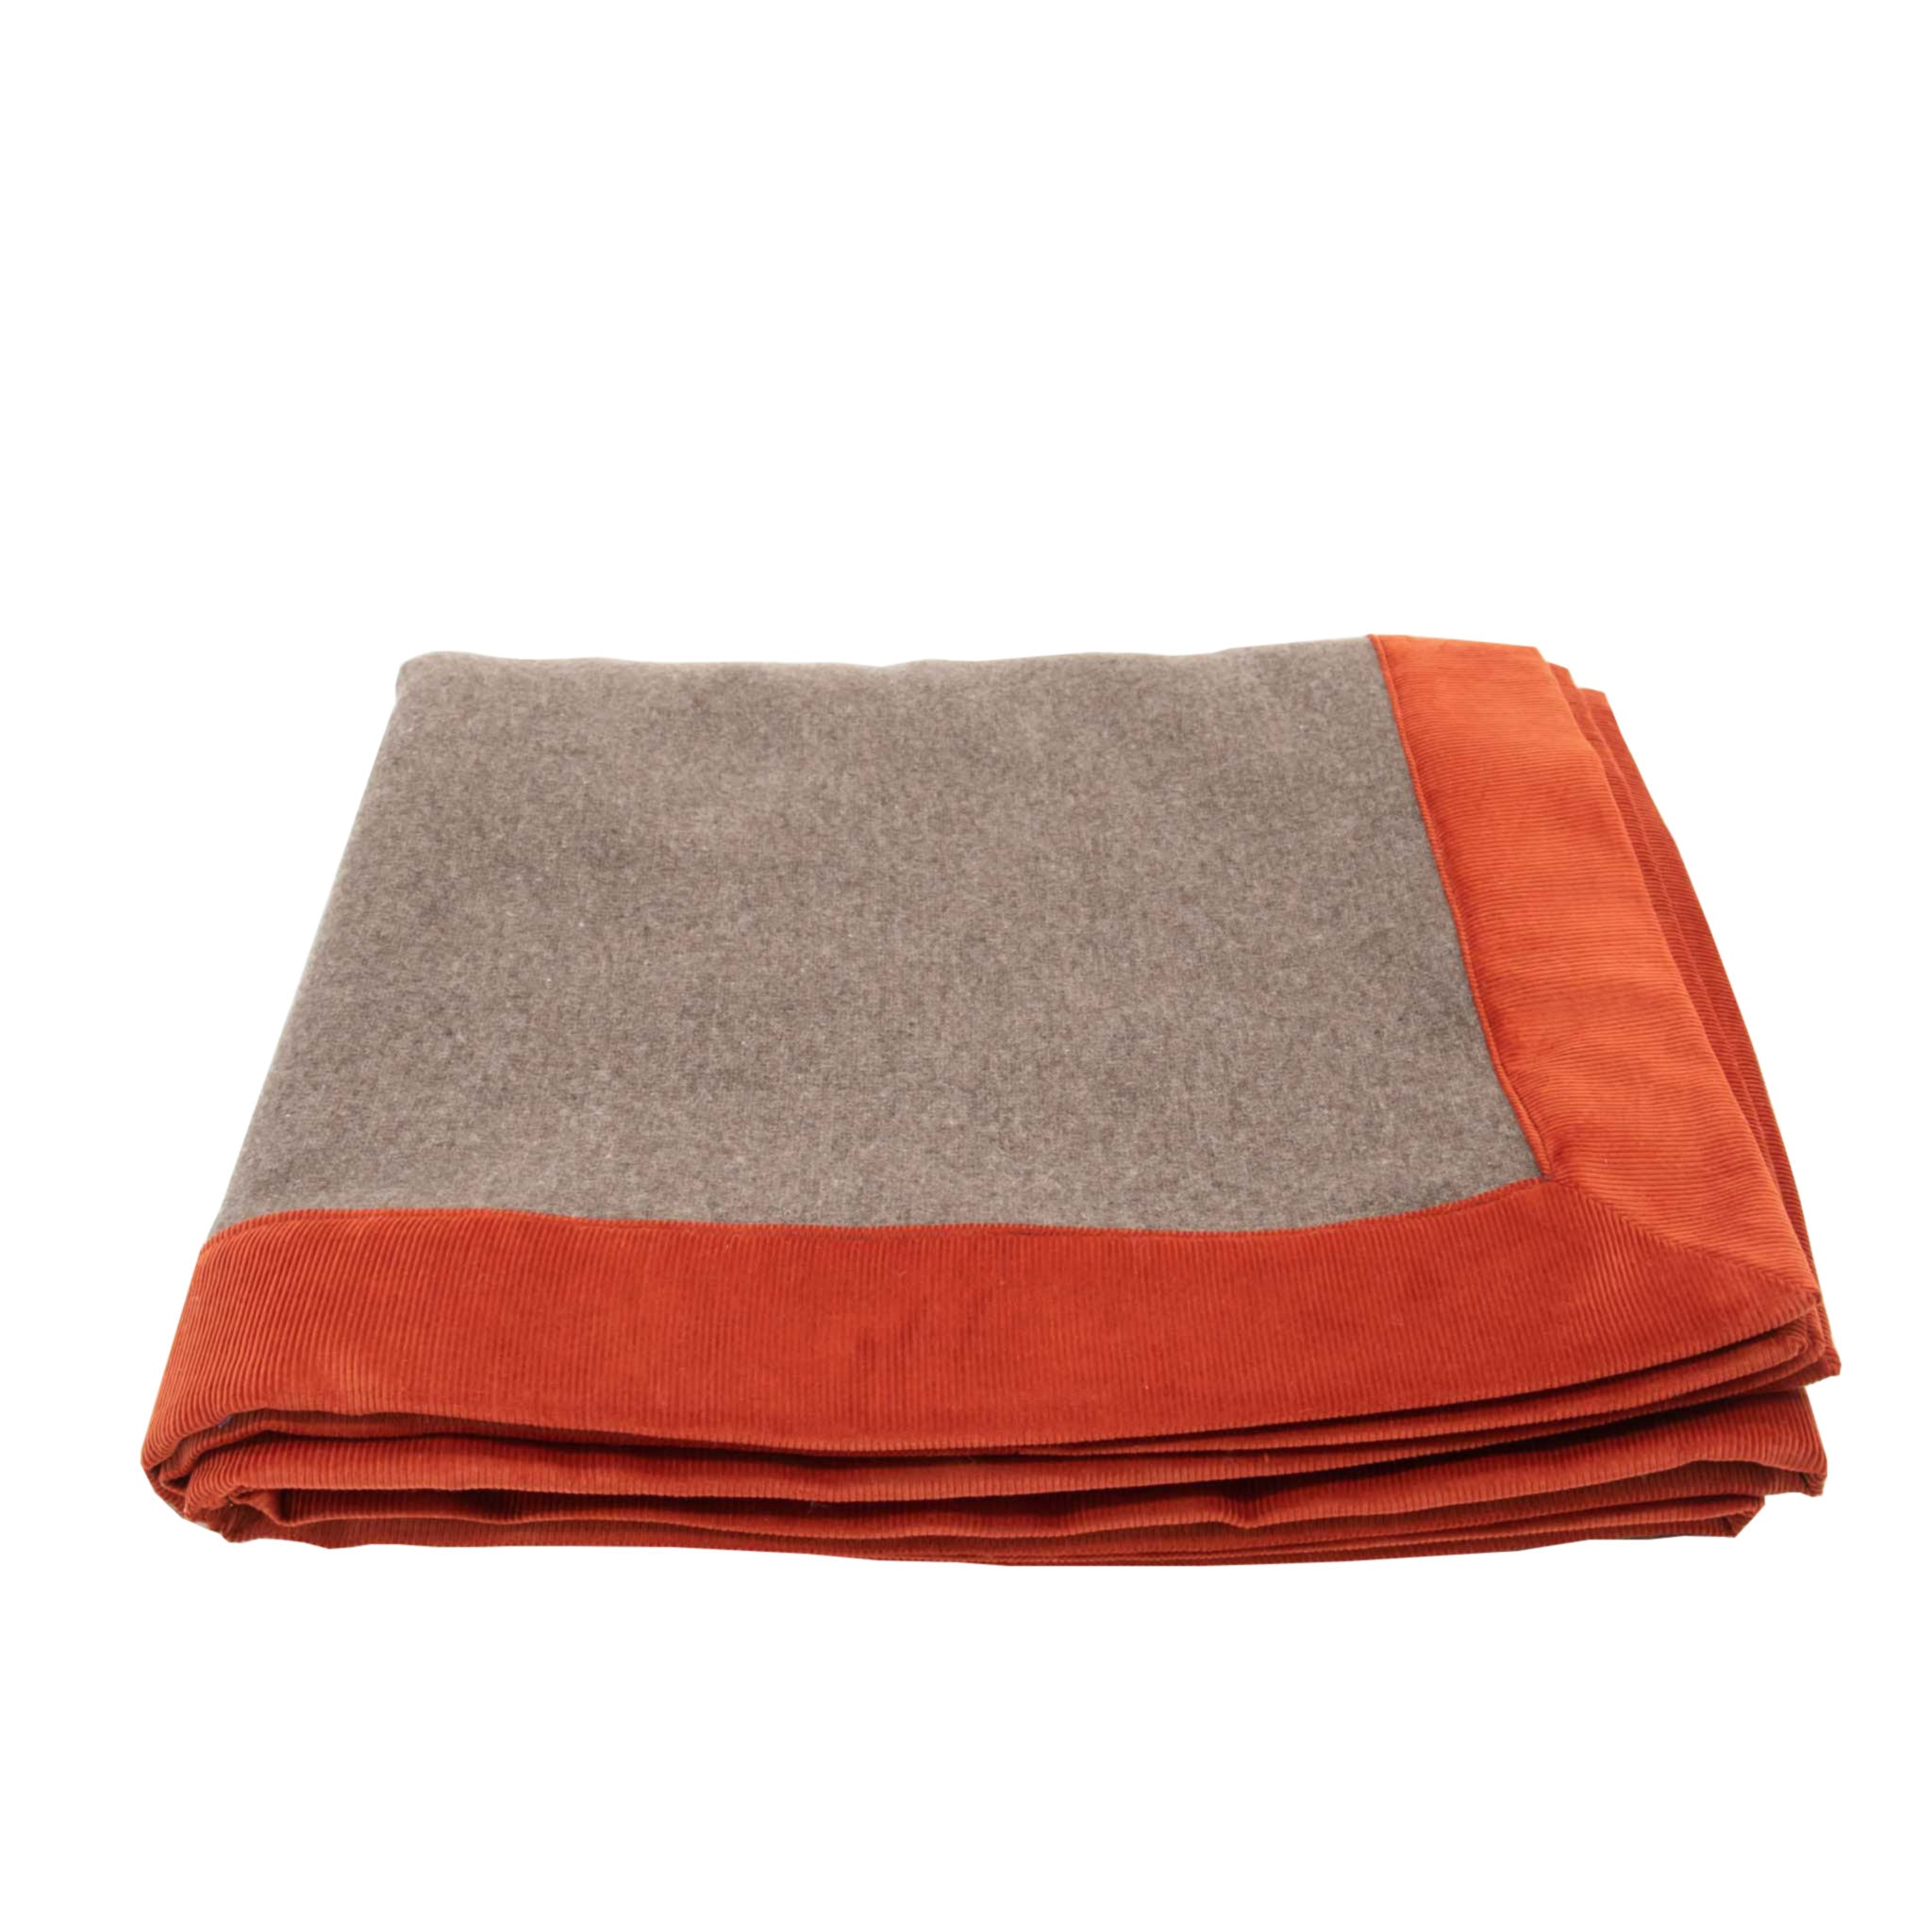 Wool Blanket with Corduroy Profile